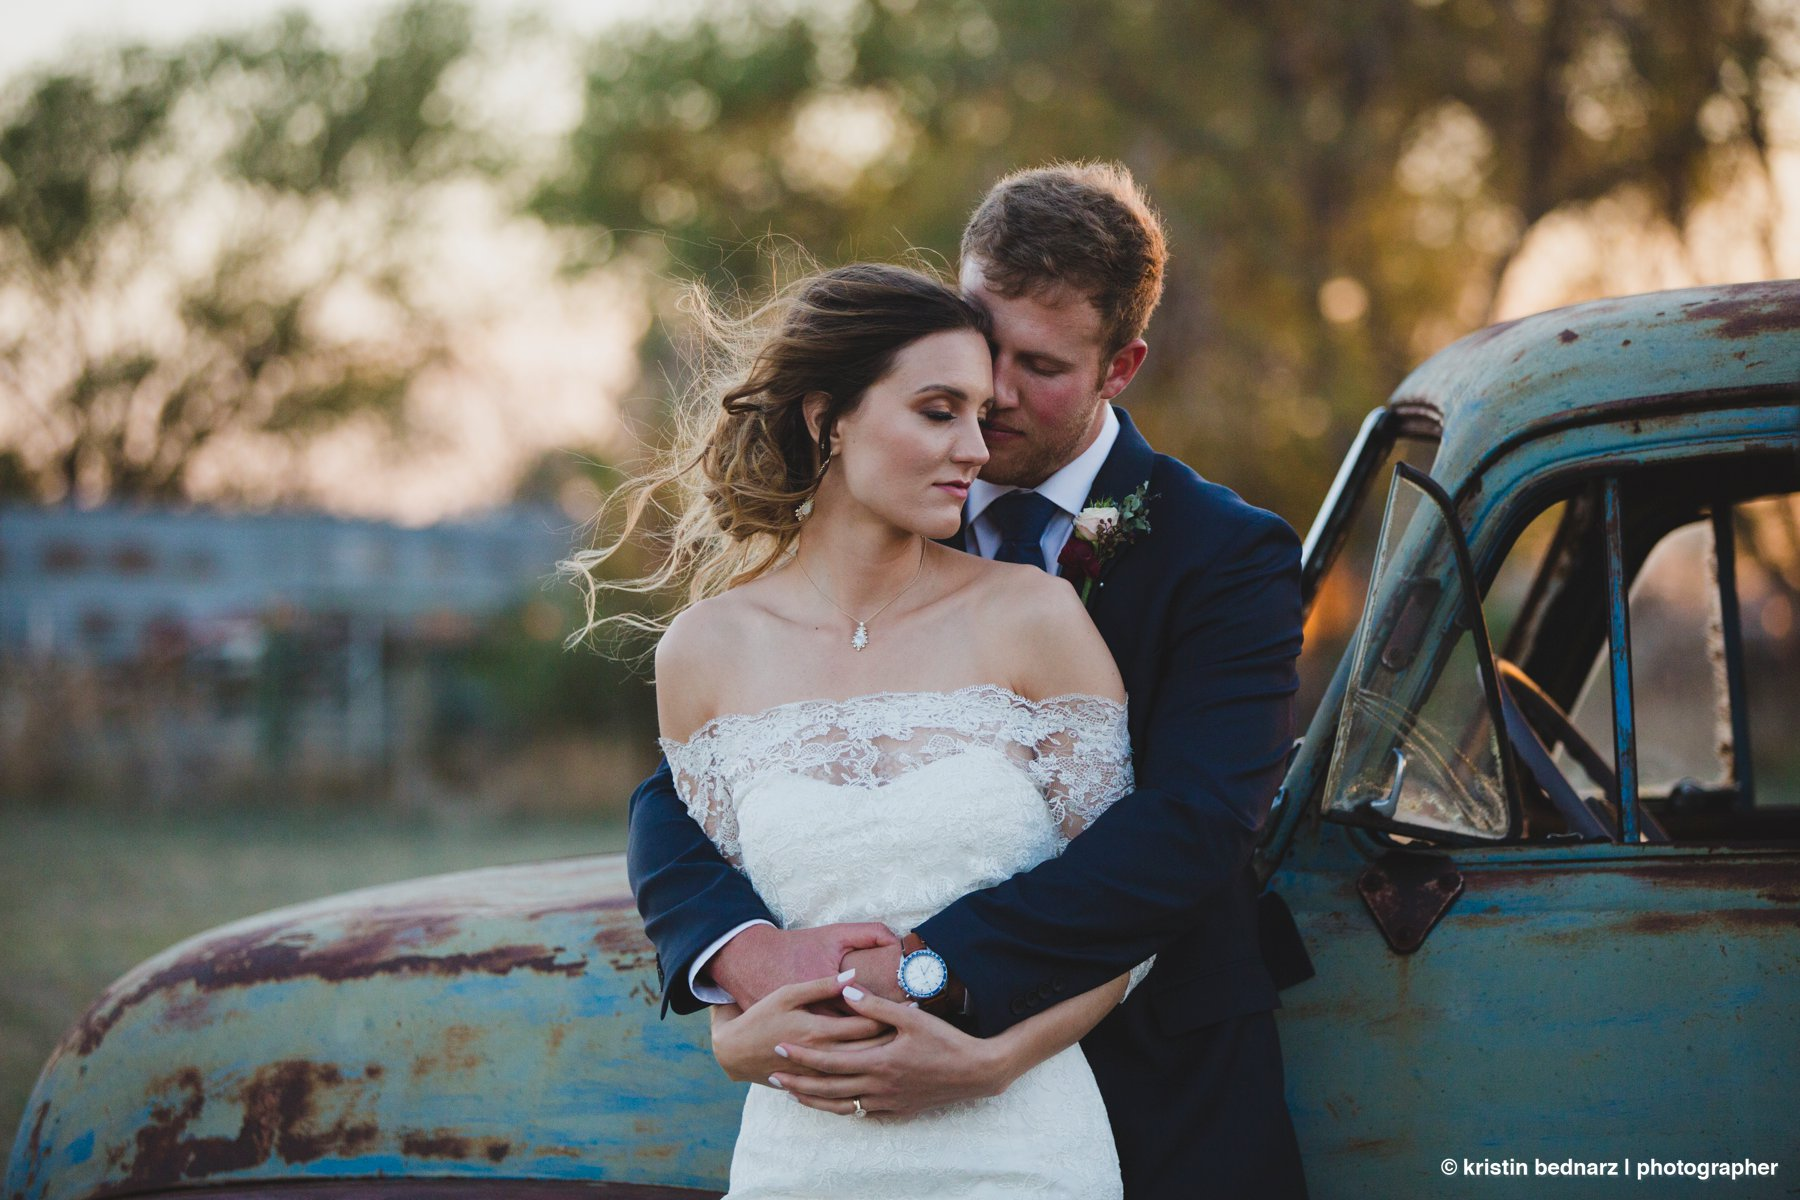 Krisitin_Bednarz_Lubbock_Wedding_Photographer_20180602_0082.JP